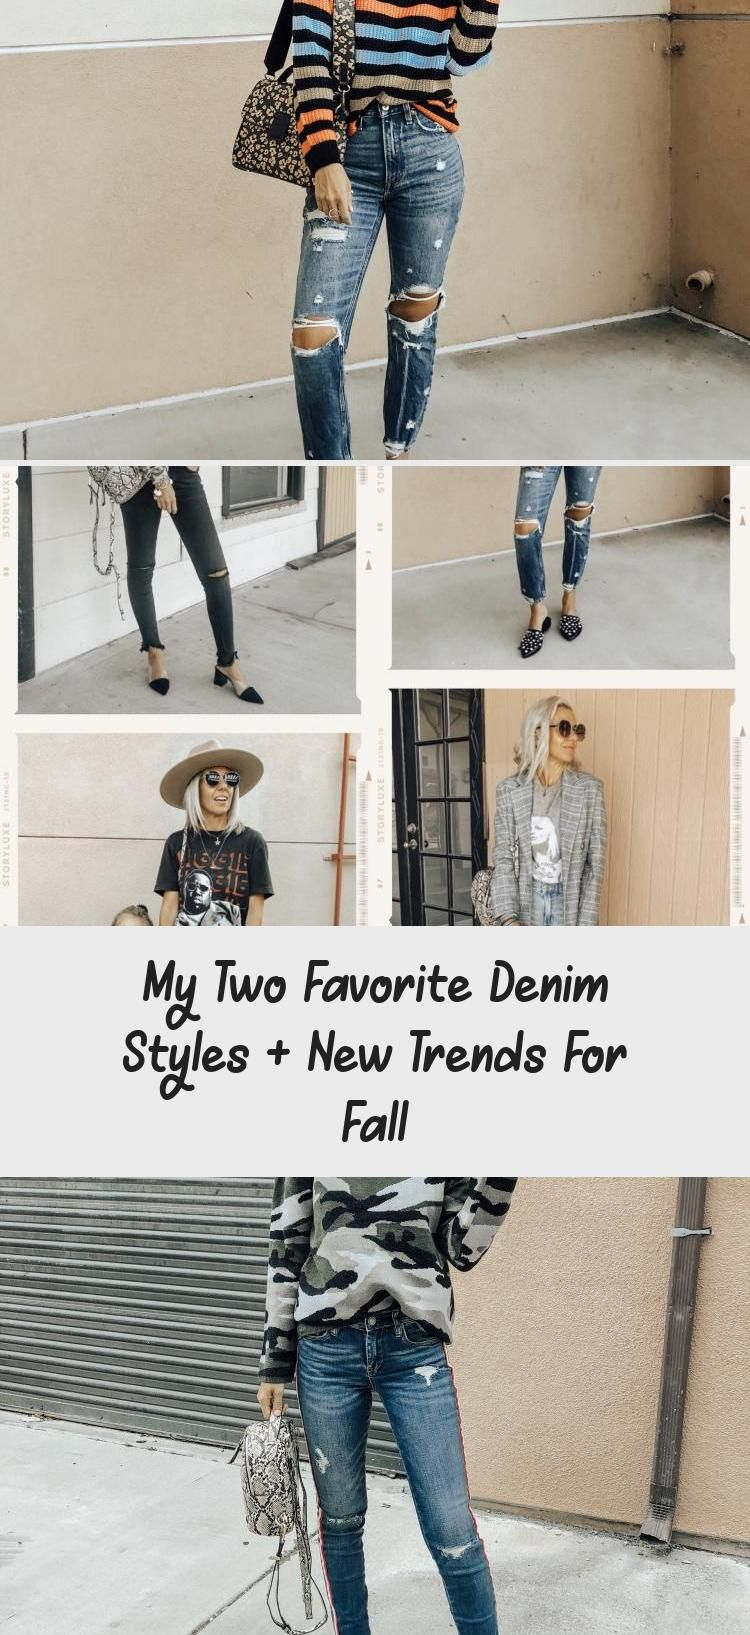 MY TWO FAVORITE DENIM STYLES + NEW TRENDS FOR FALL + I'm leopard  wearing my go to pair of high  rise skinny crop jeans and paired it with a biggie graphic tee. Sharing all the ways to style them on the blog #simplefashionoutfitsforwomencomfy